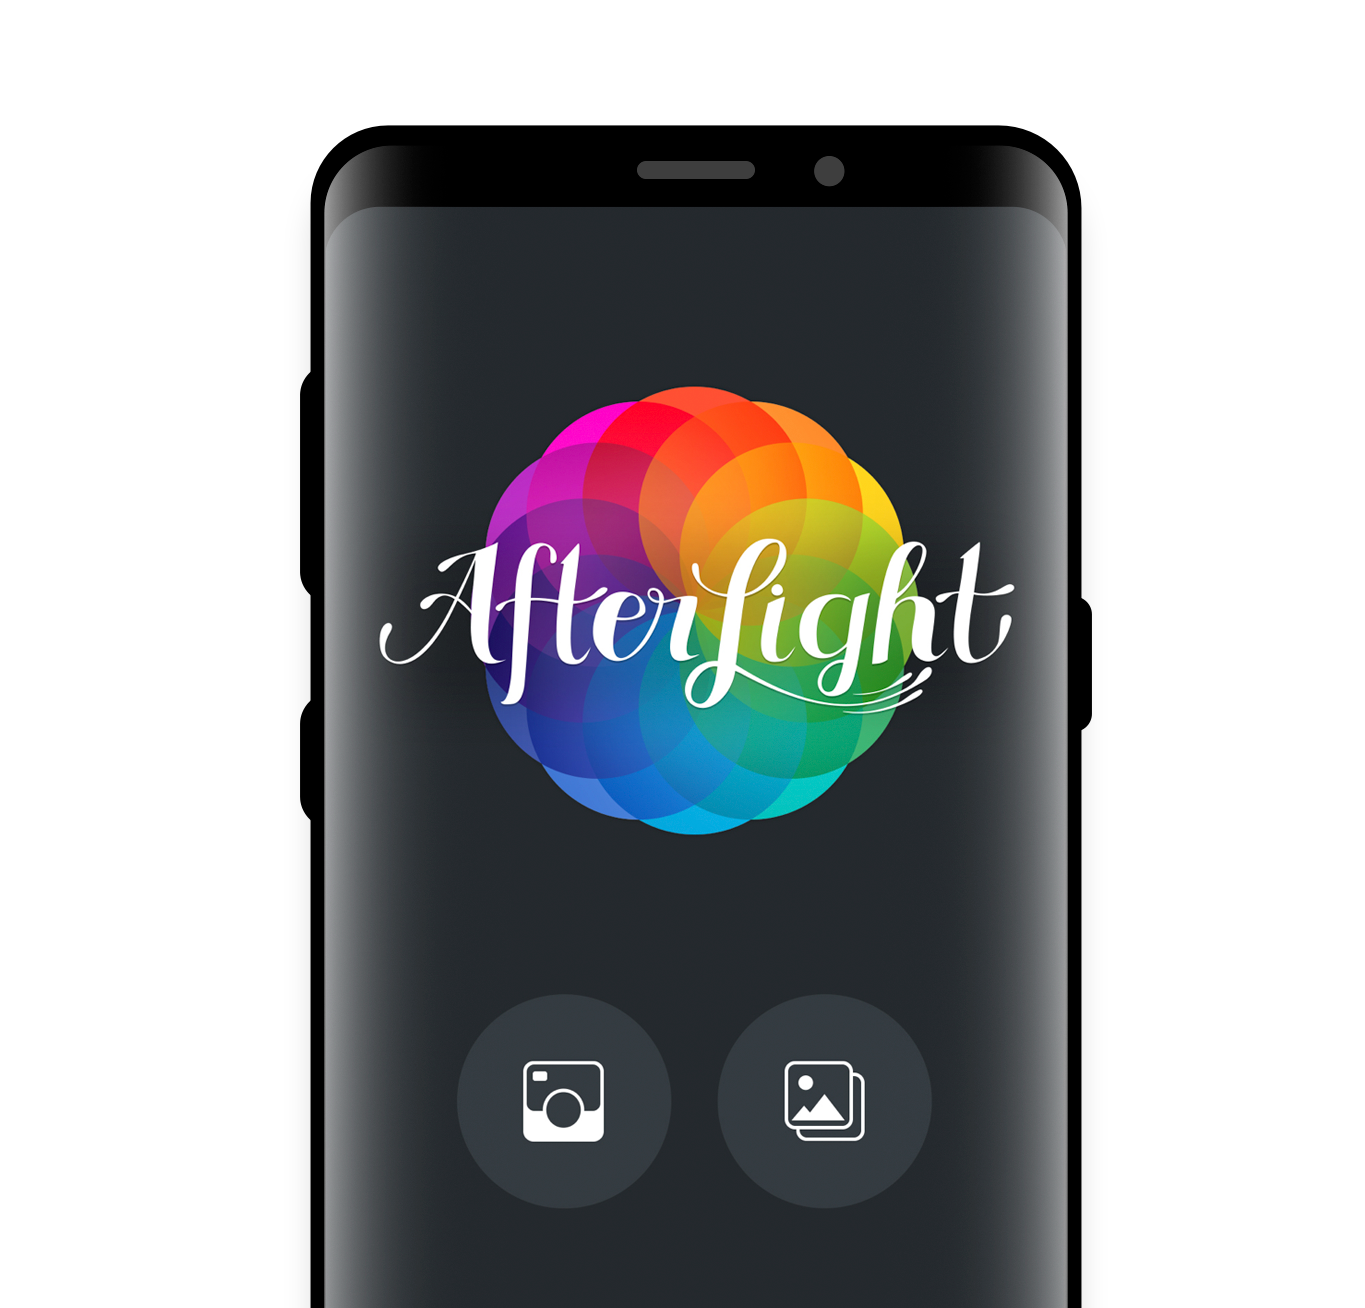 Preview of Afterlight app